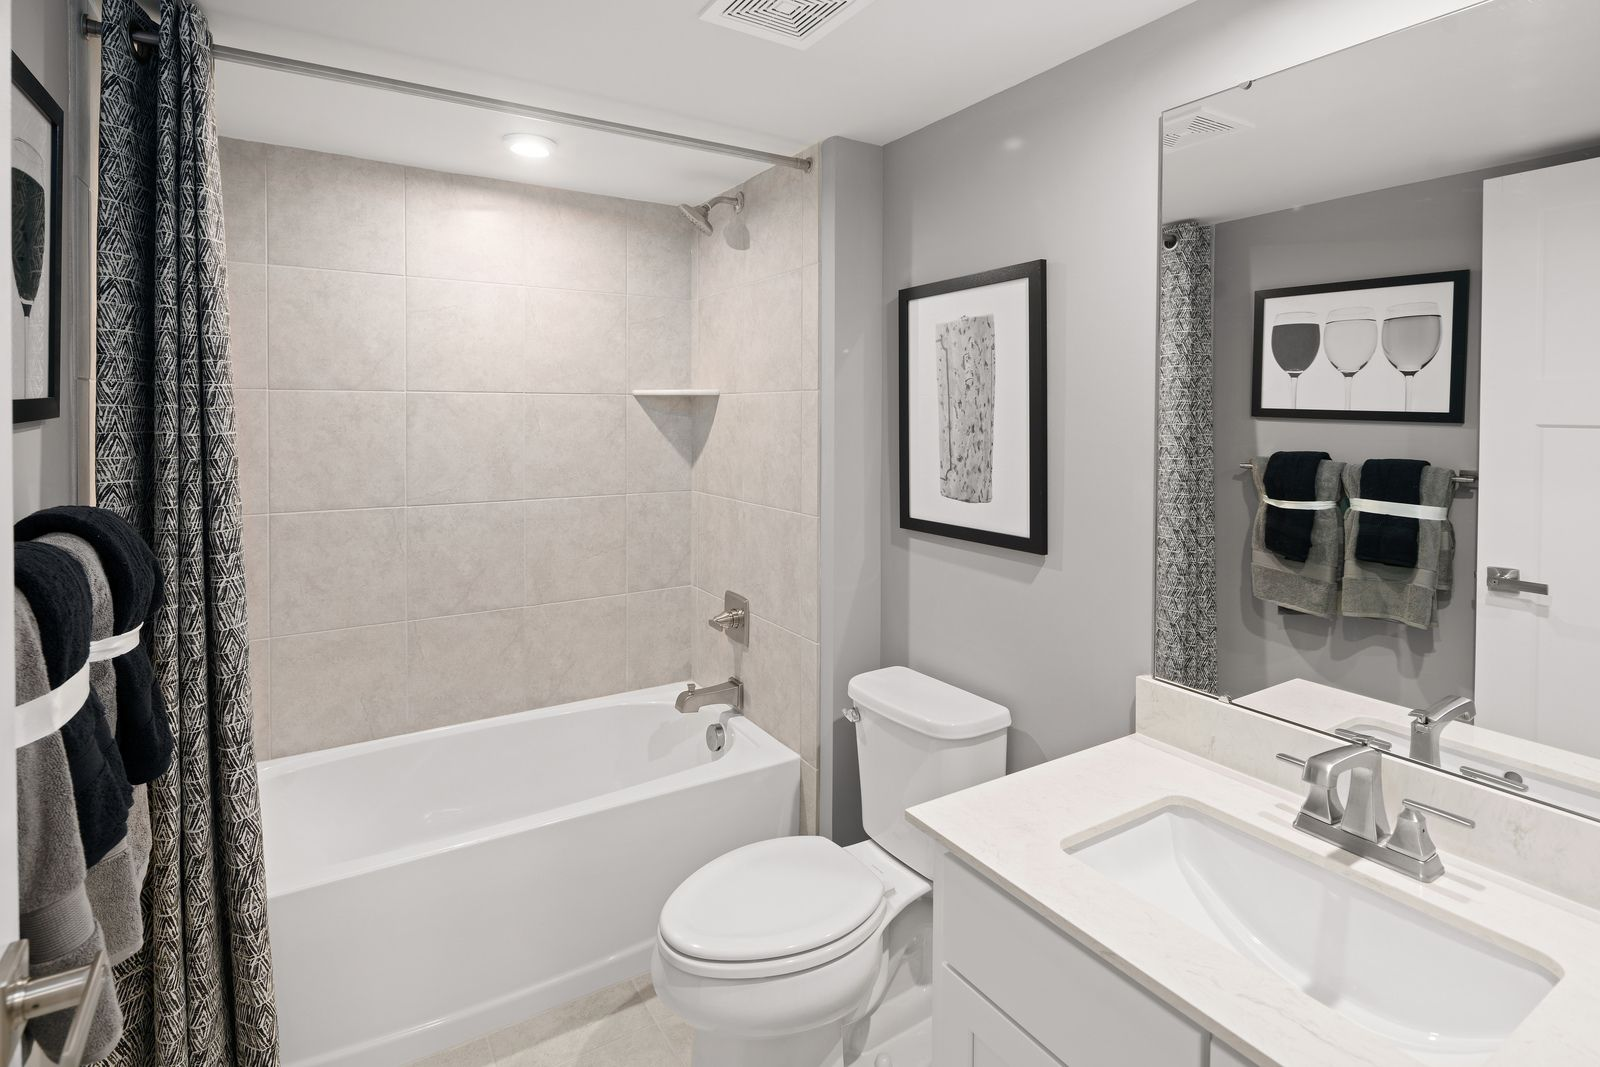 Bathroom featured in the Waldorf By Ryan Homes in Philadelphia, PA